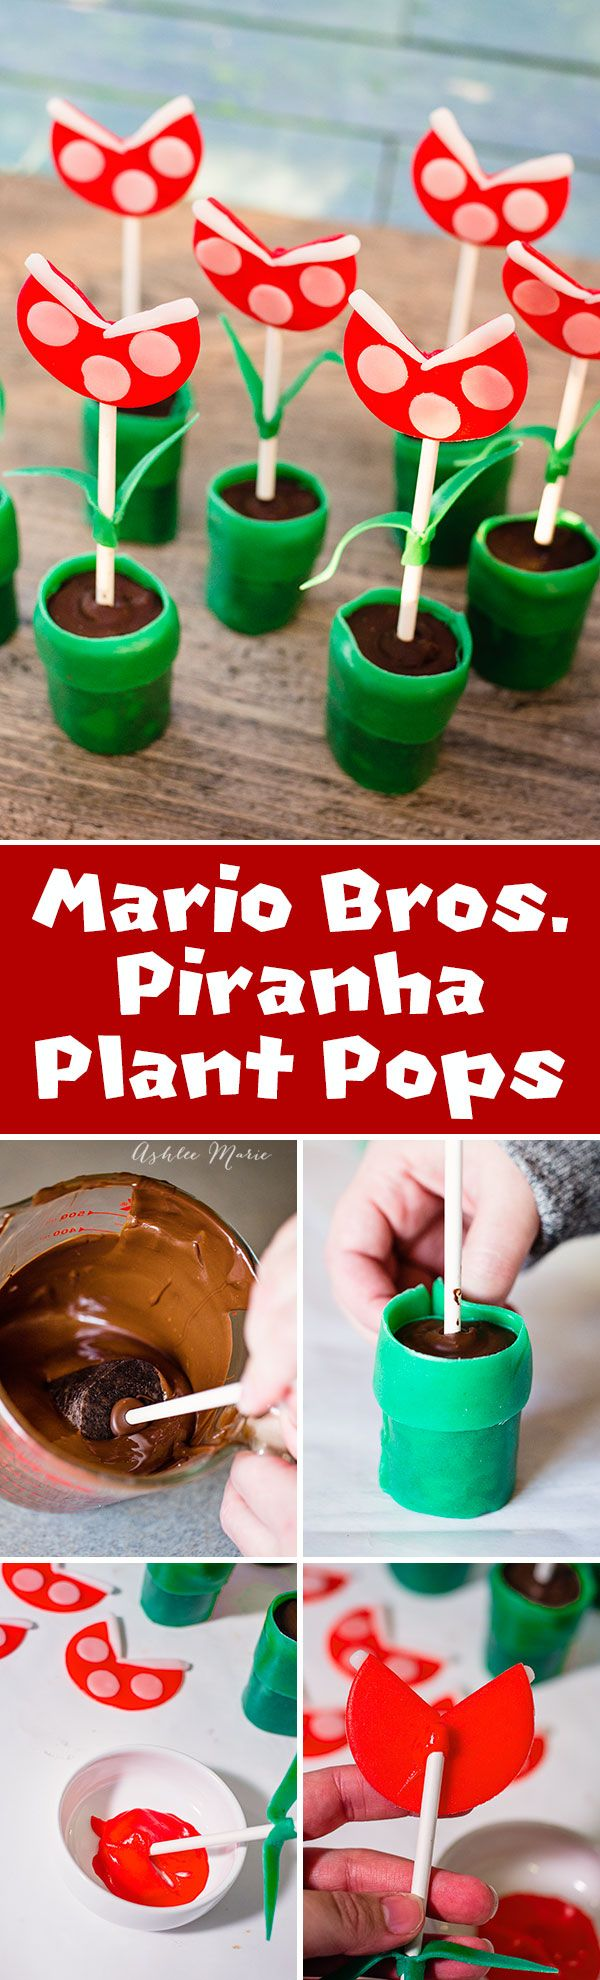 using oreo cookie pops or cake pops as a base and Airheads candy for decorating create these mario tubes and piranha plants #airheadscrafts @airheadscandy